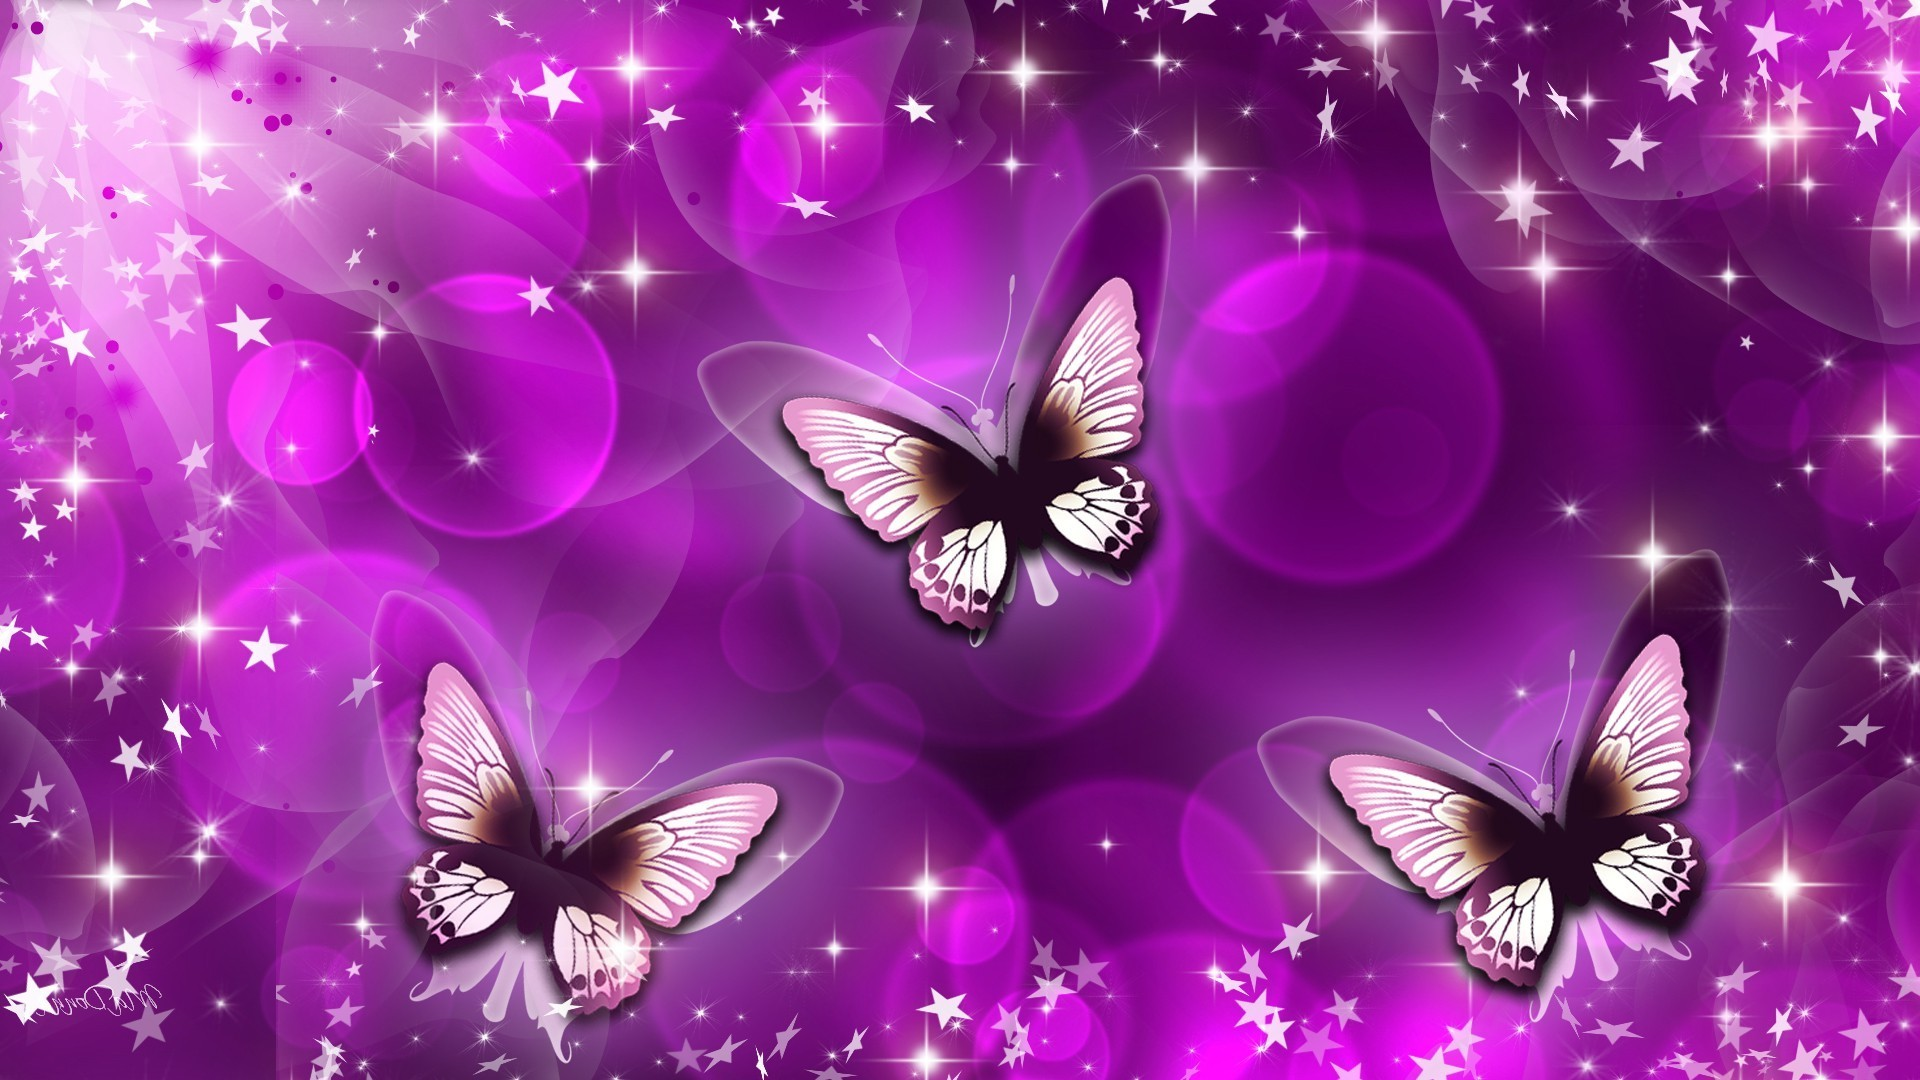 Animated butterfly background